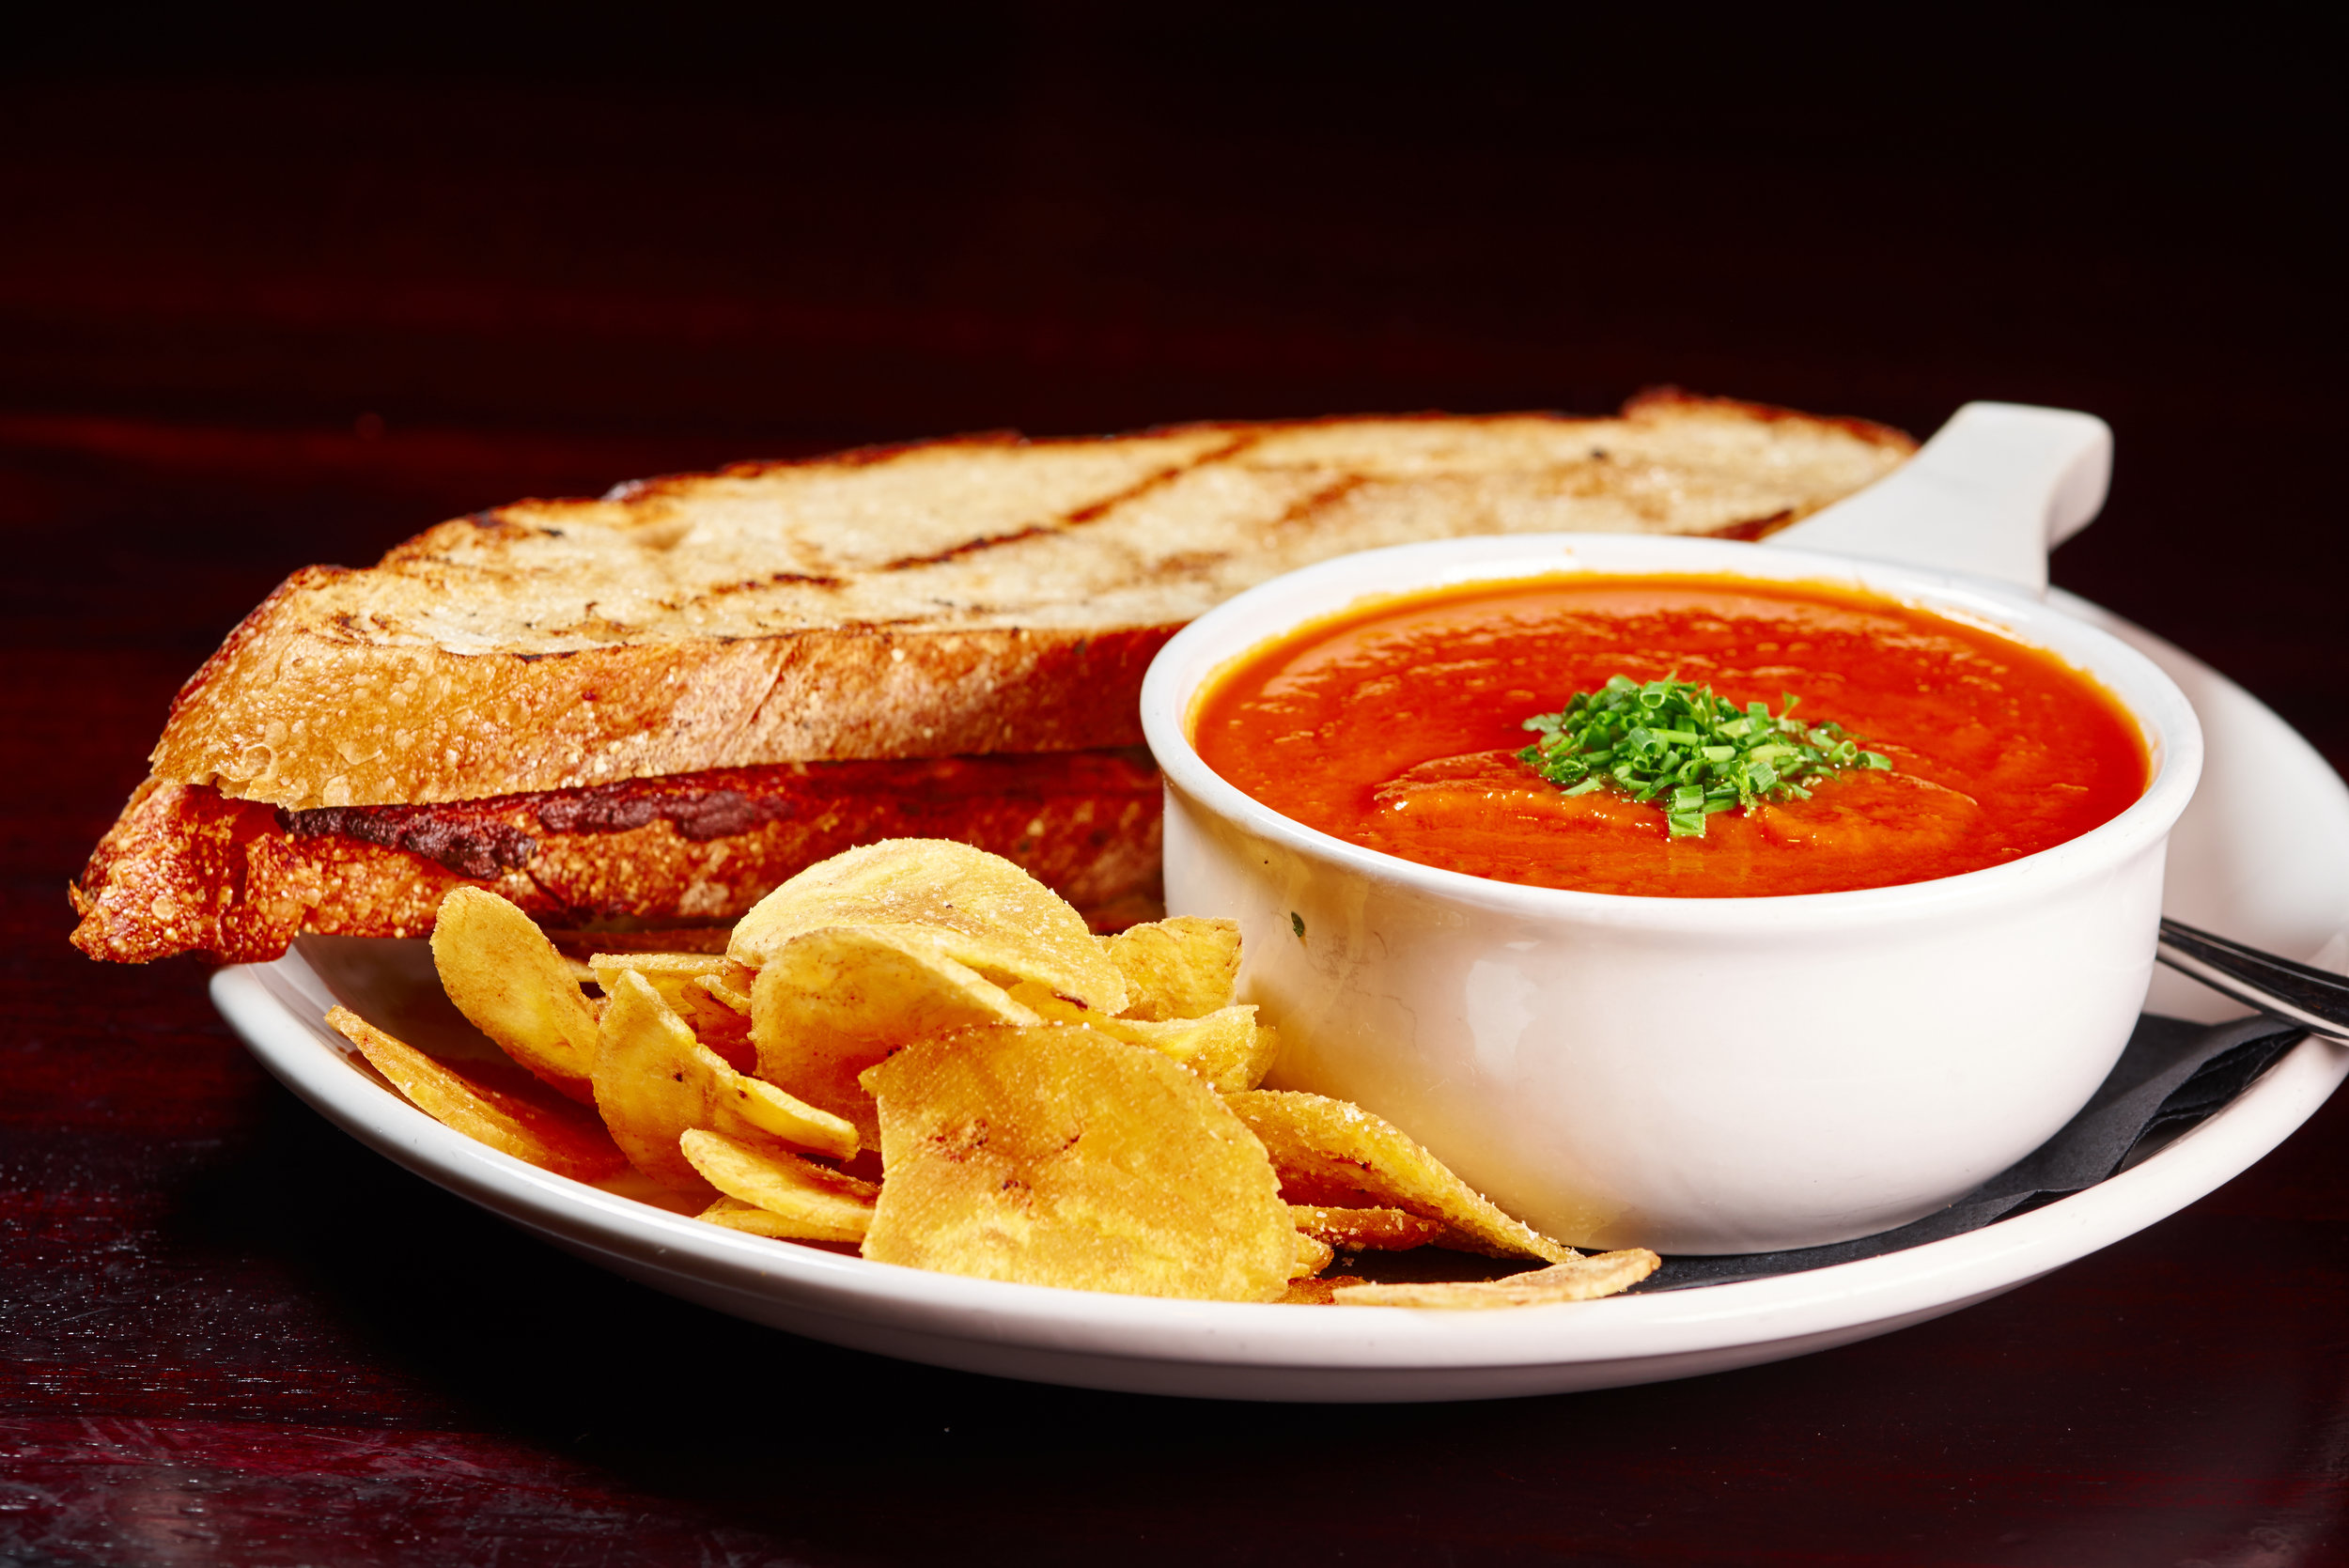 Professional food photo of a grilled cheese sandwich with tomato soup and potato chips on the side. Commercial photography. Photo taken by Lupa Photography